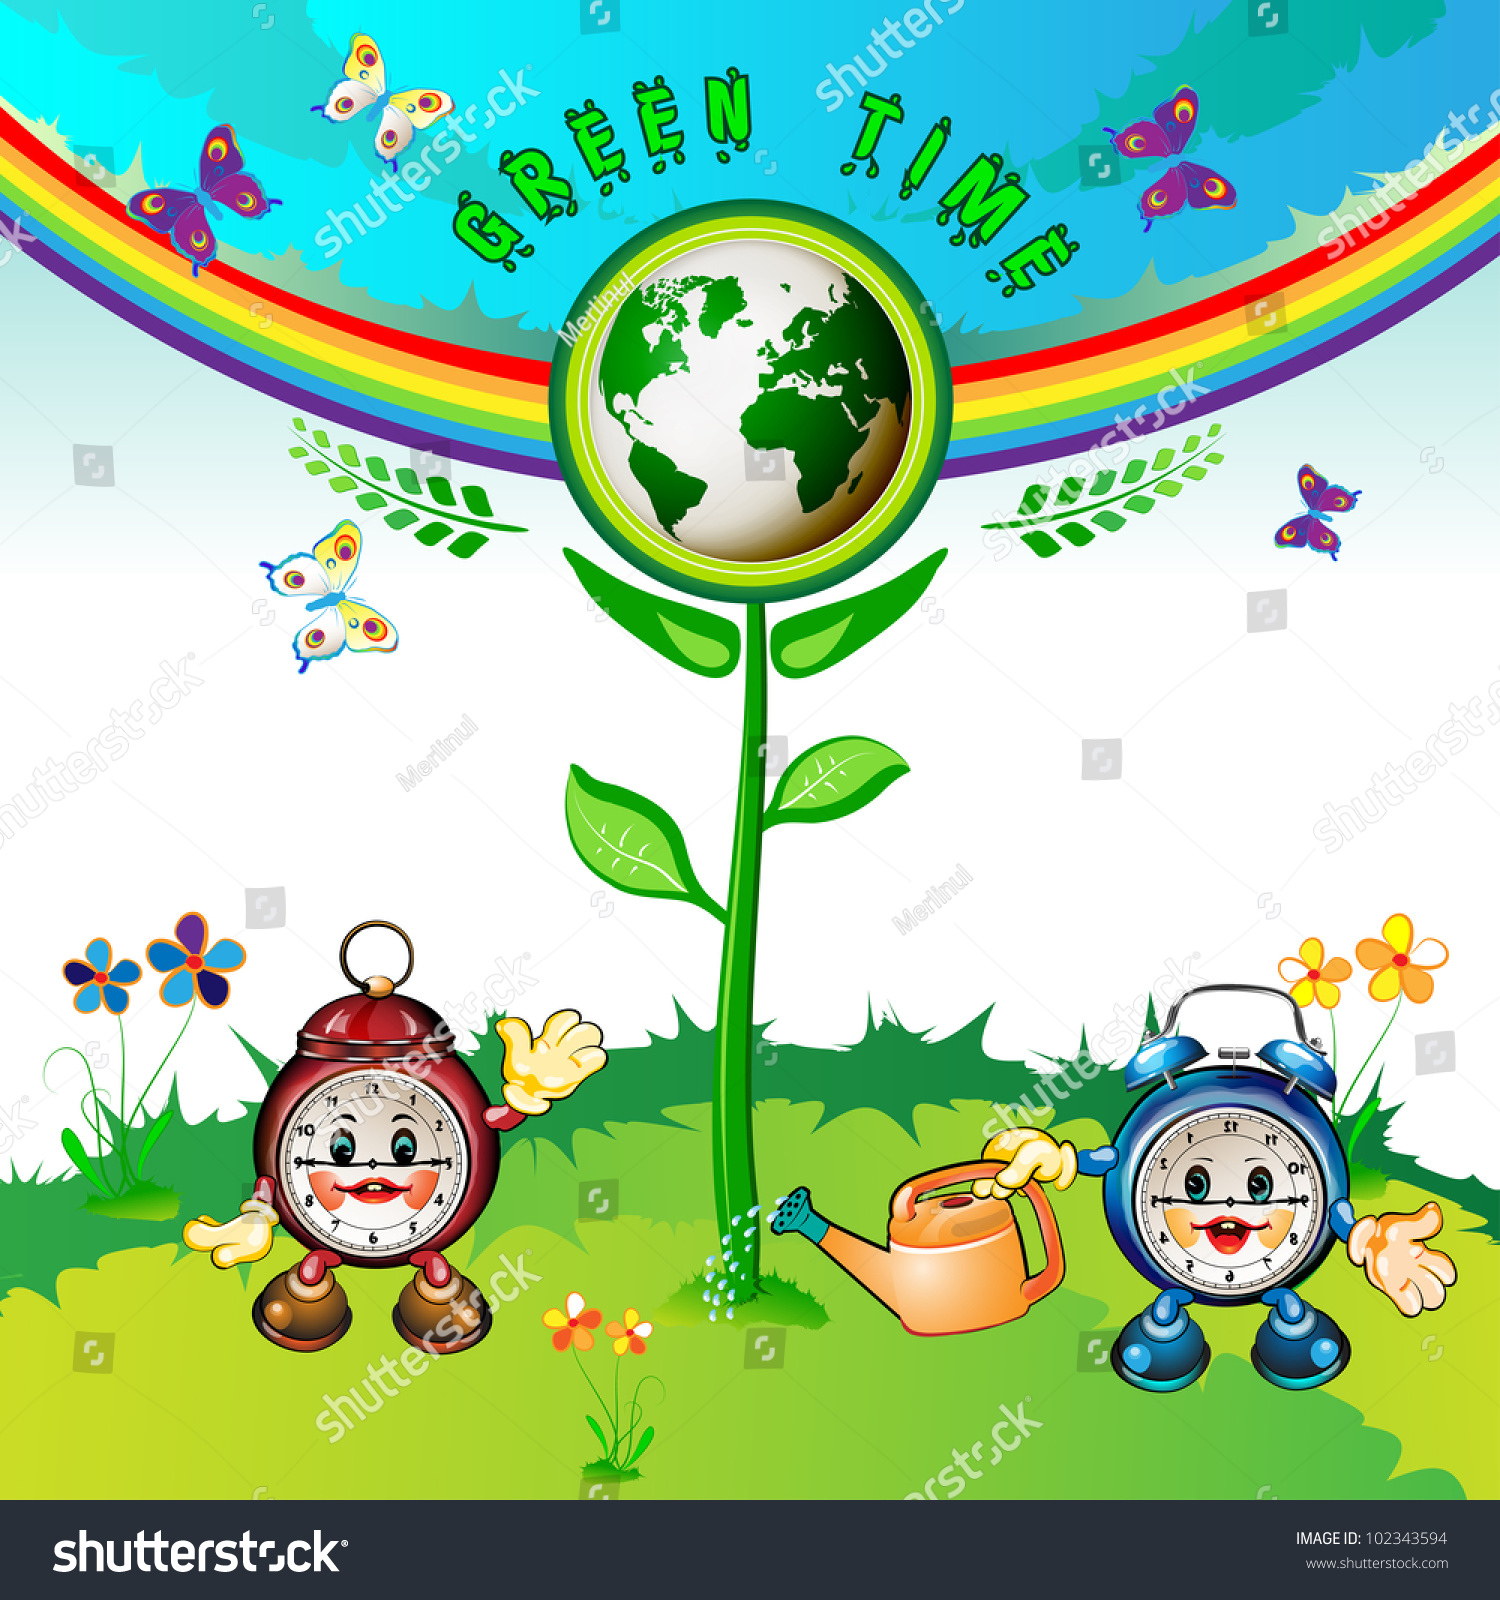 eco earth cartoon clocks flowers butterflies stock illustration